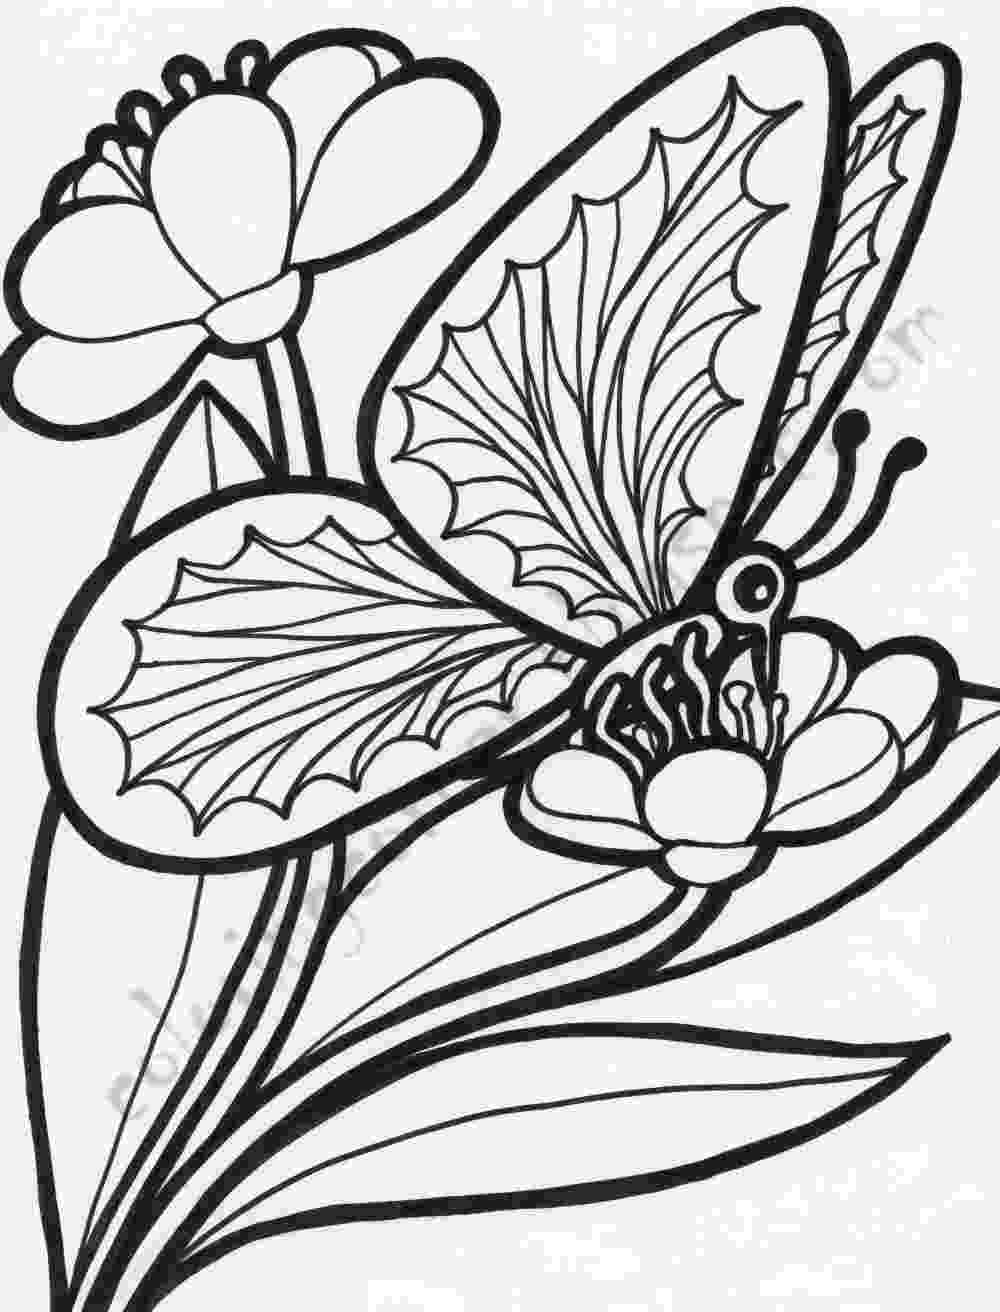 coloring flowers free printable flower coloring pages for kids cool2bkids coloring flowers 1 1